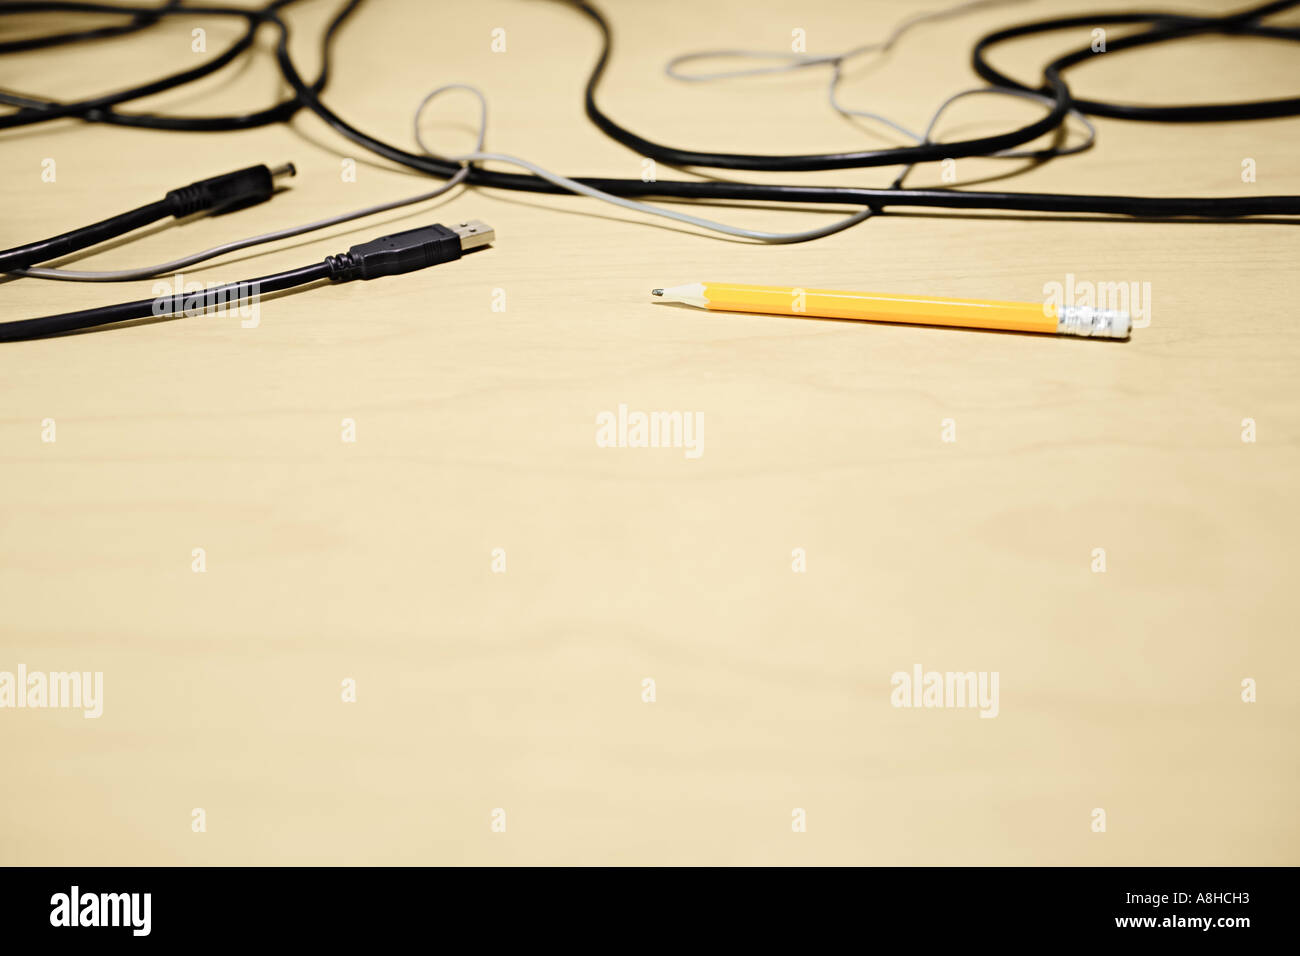 Yellow Pencil And Computer Cables On Desktop - Stock Image